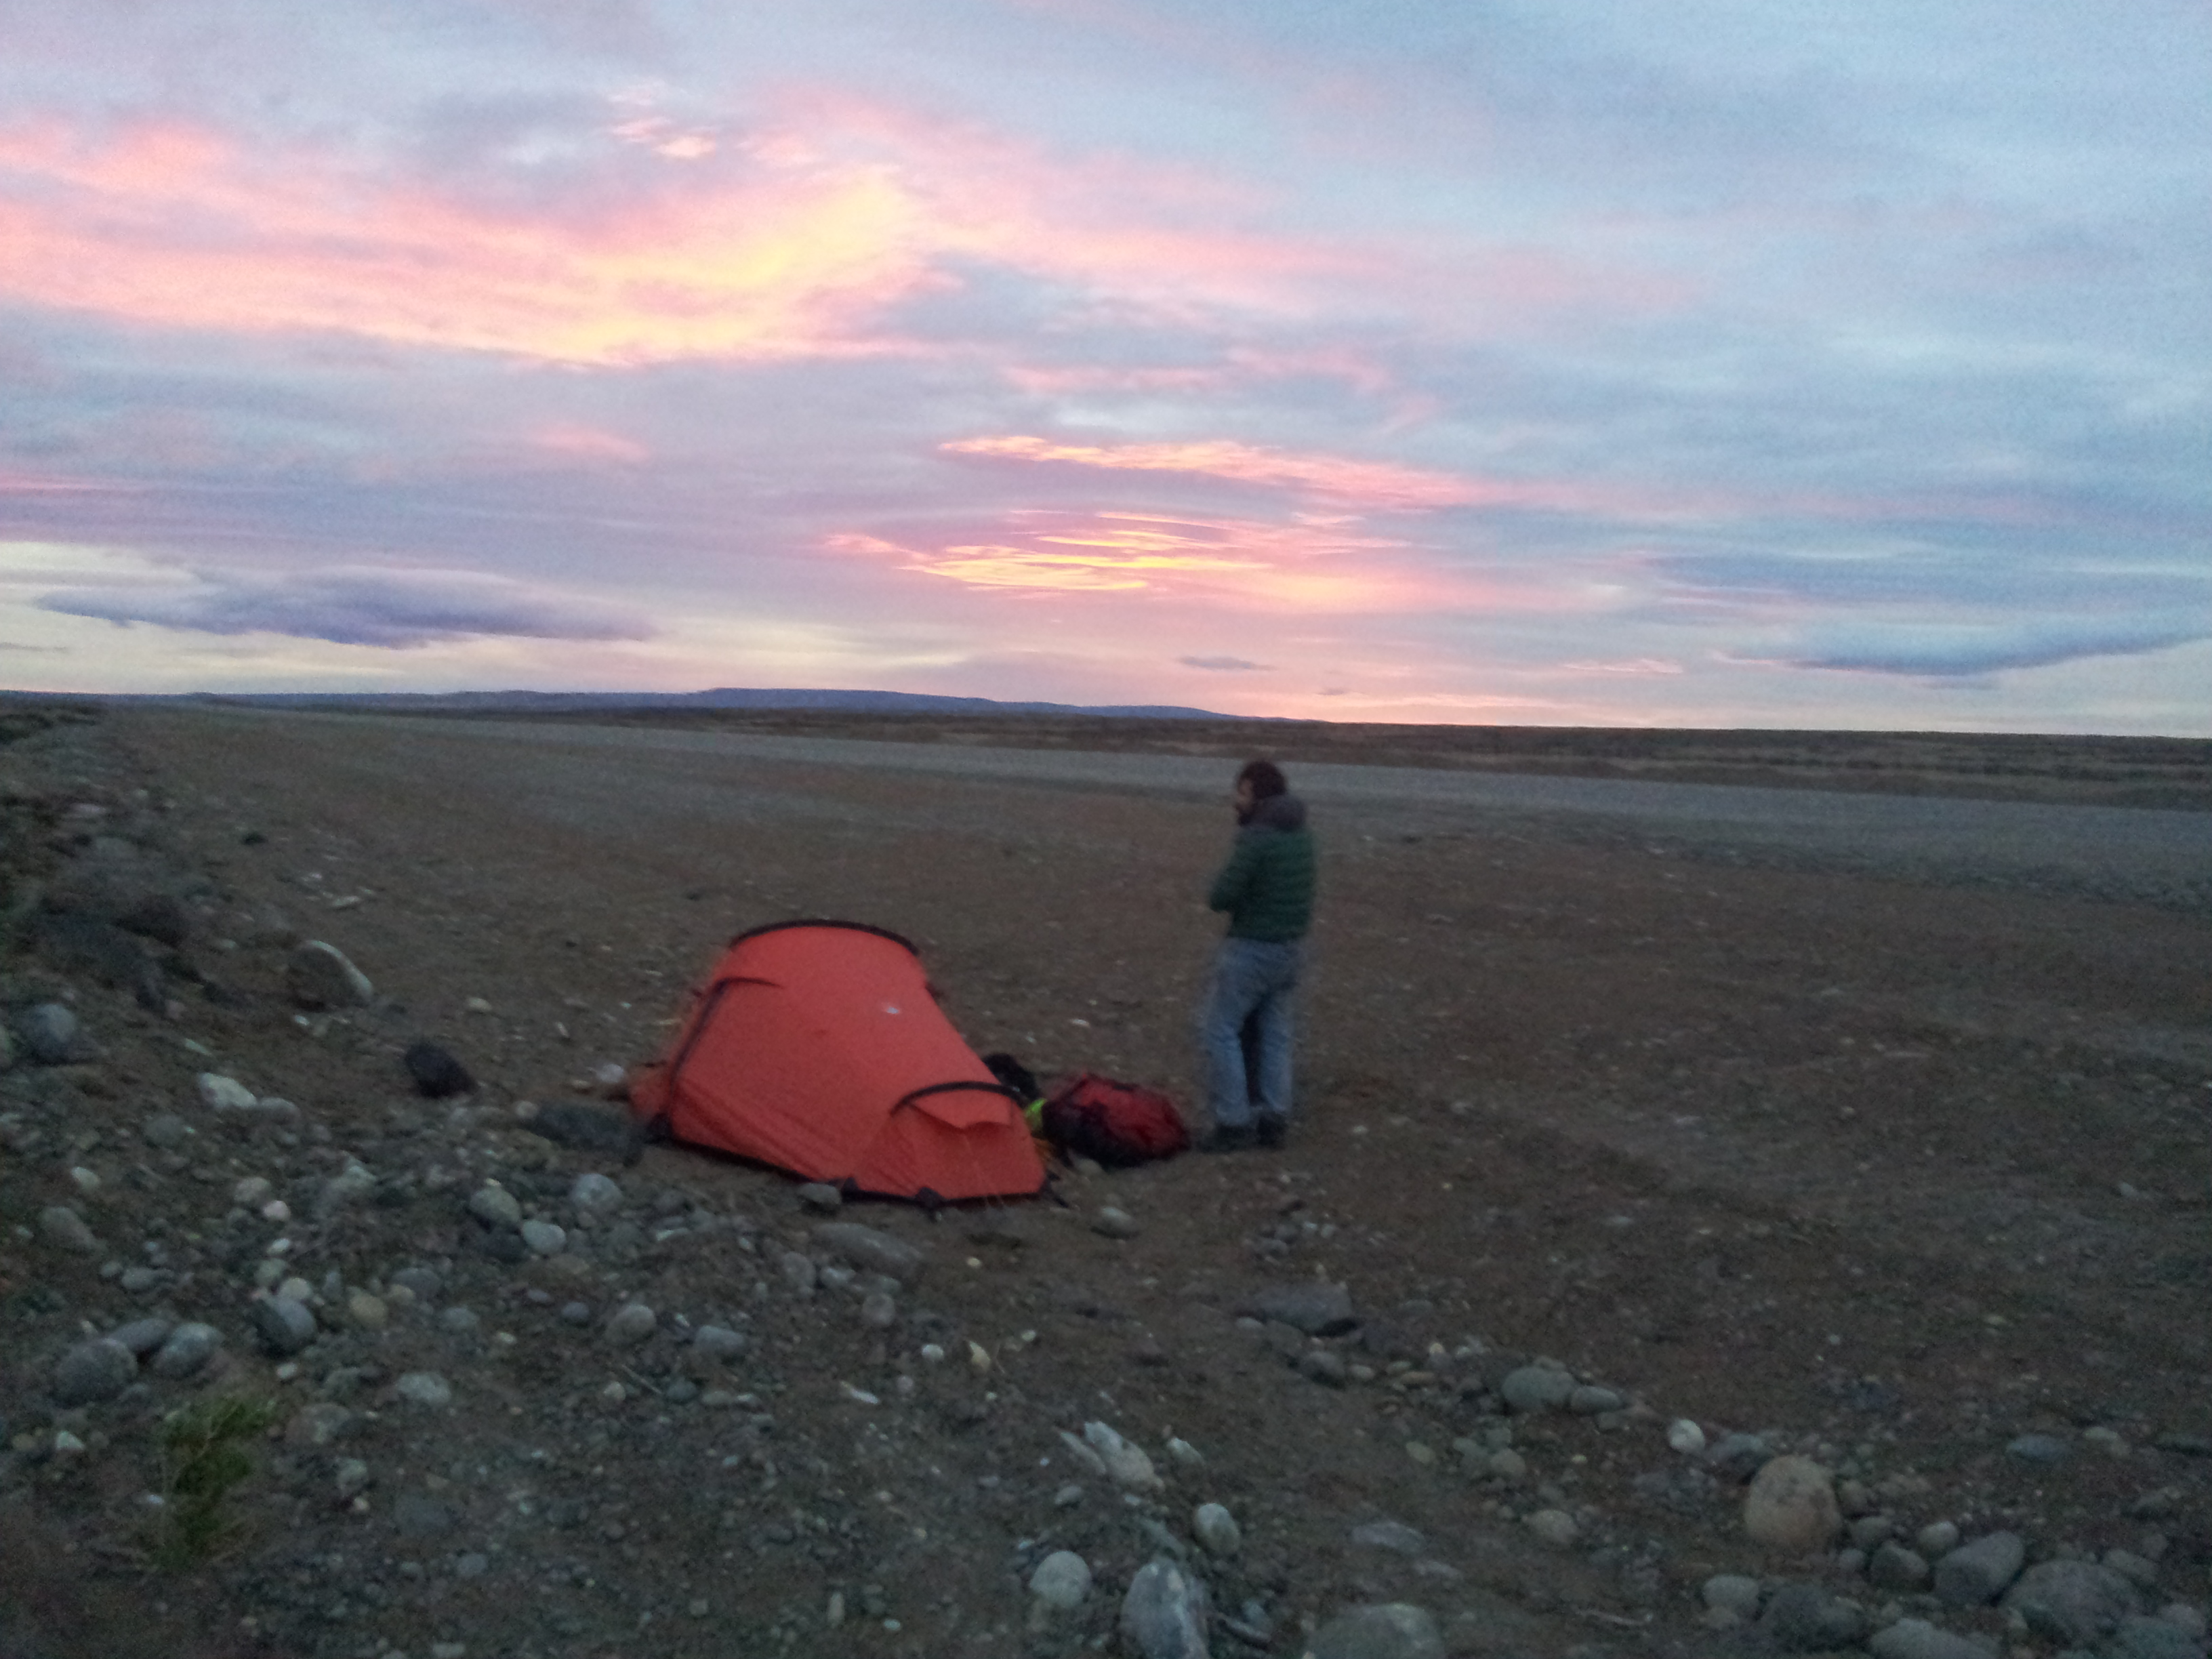 Wild camping on the road side